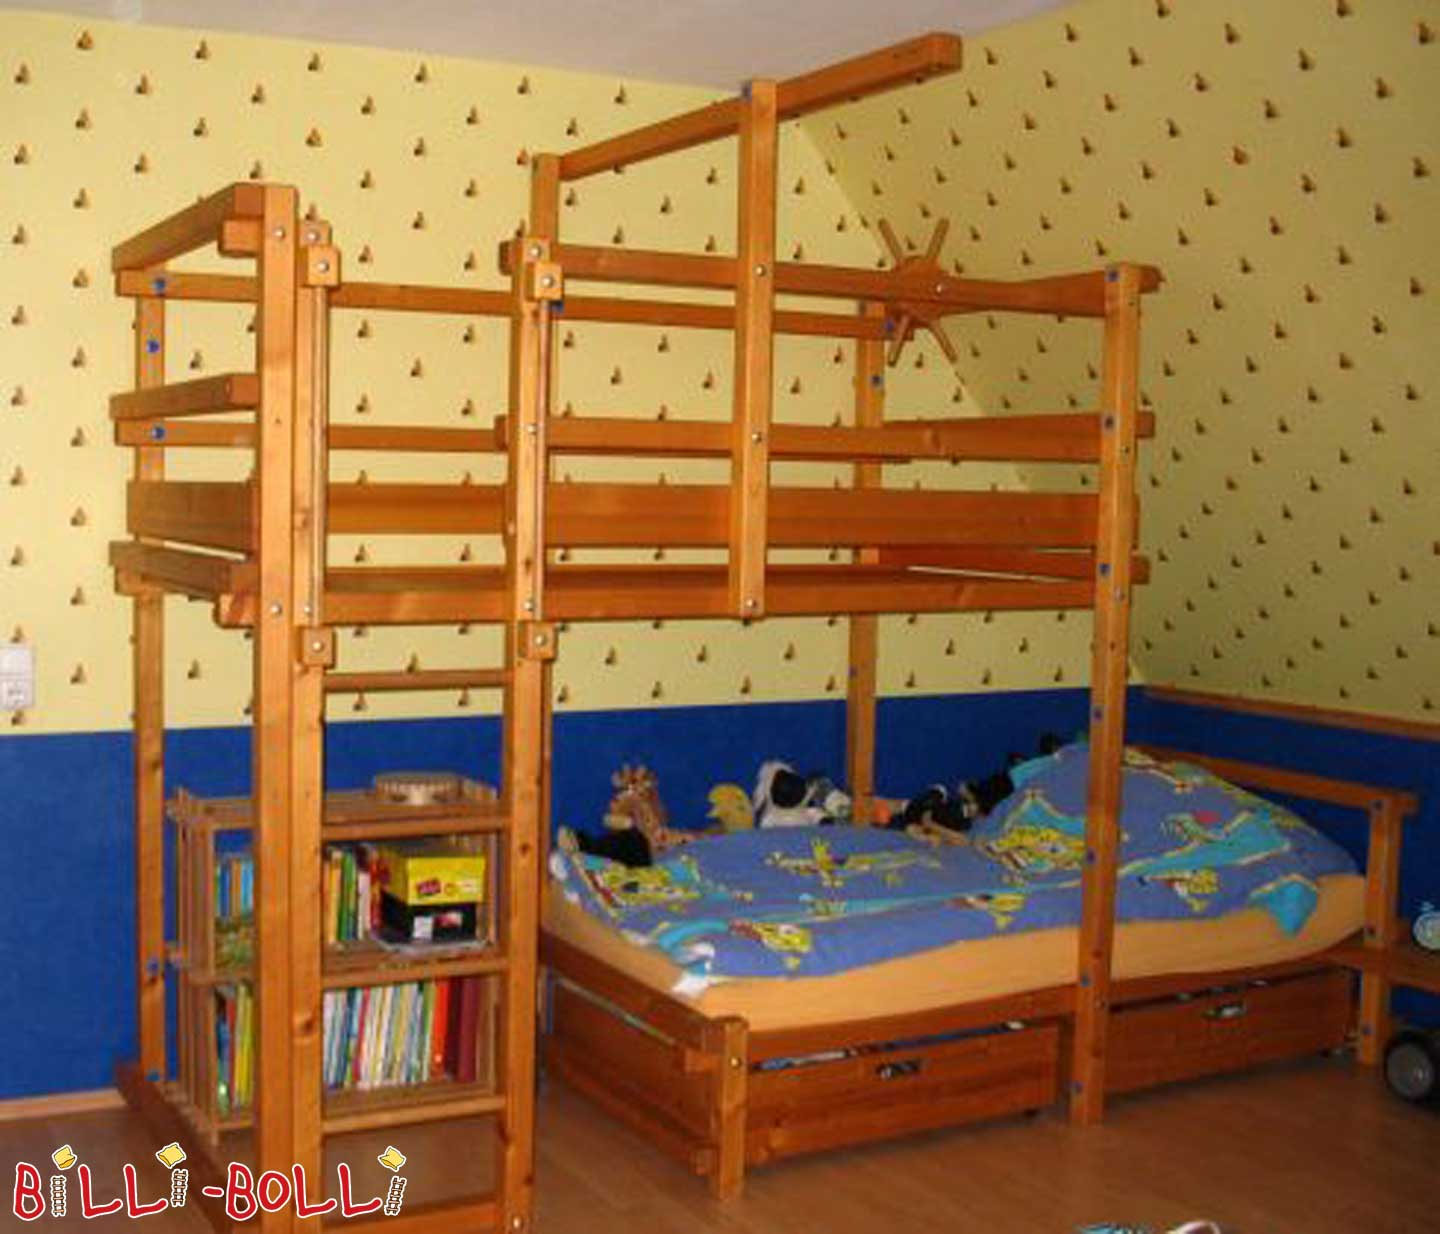 Billi Bolli adventure bed (second hand adventure bed)